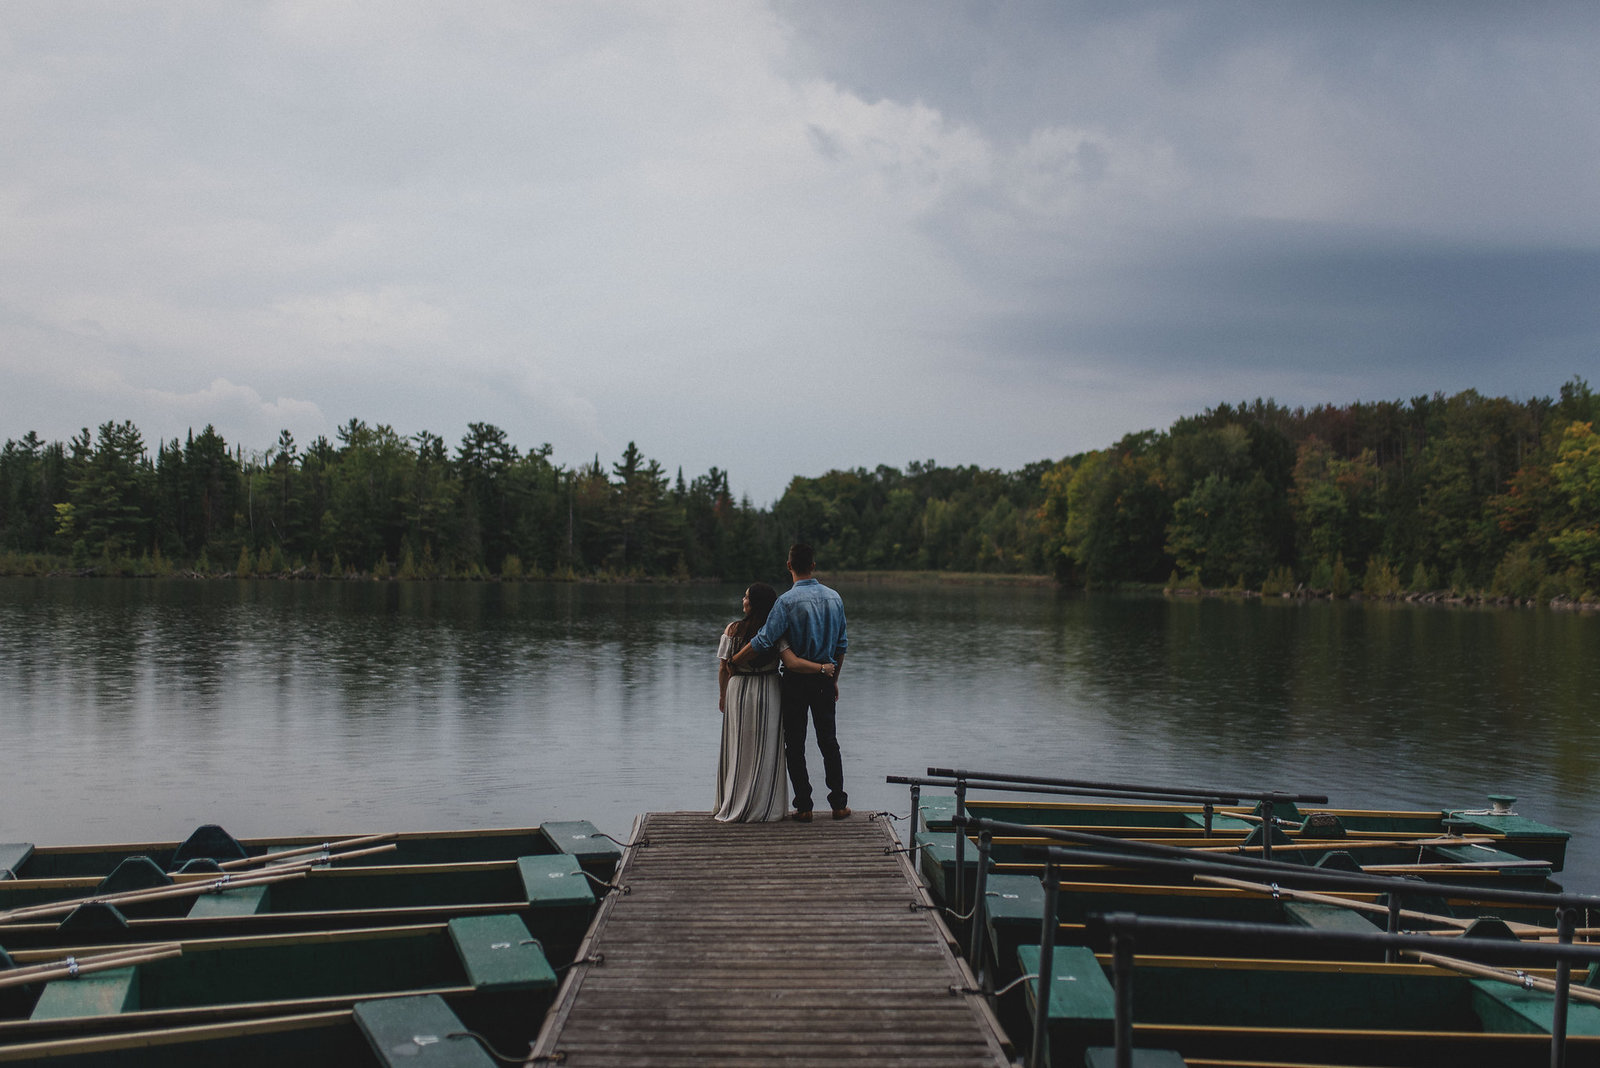 The Wedding Co. Romantic Stormy Engagement Session The Notebook | Jacqueline James Photography Toronto Wedding Photographer